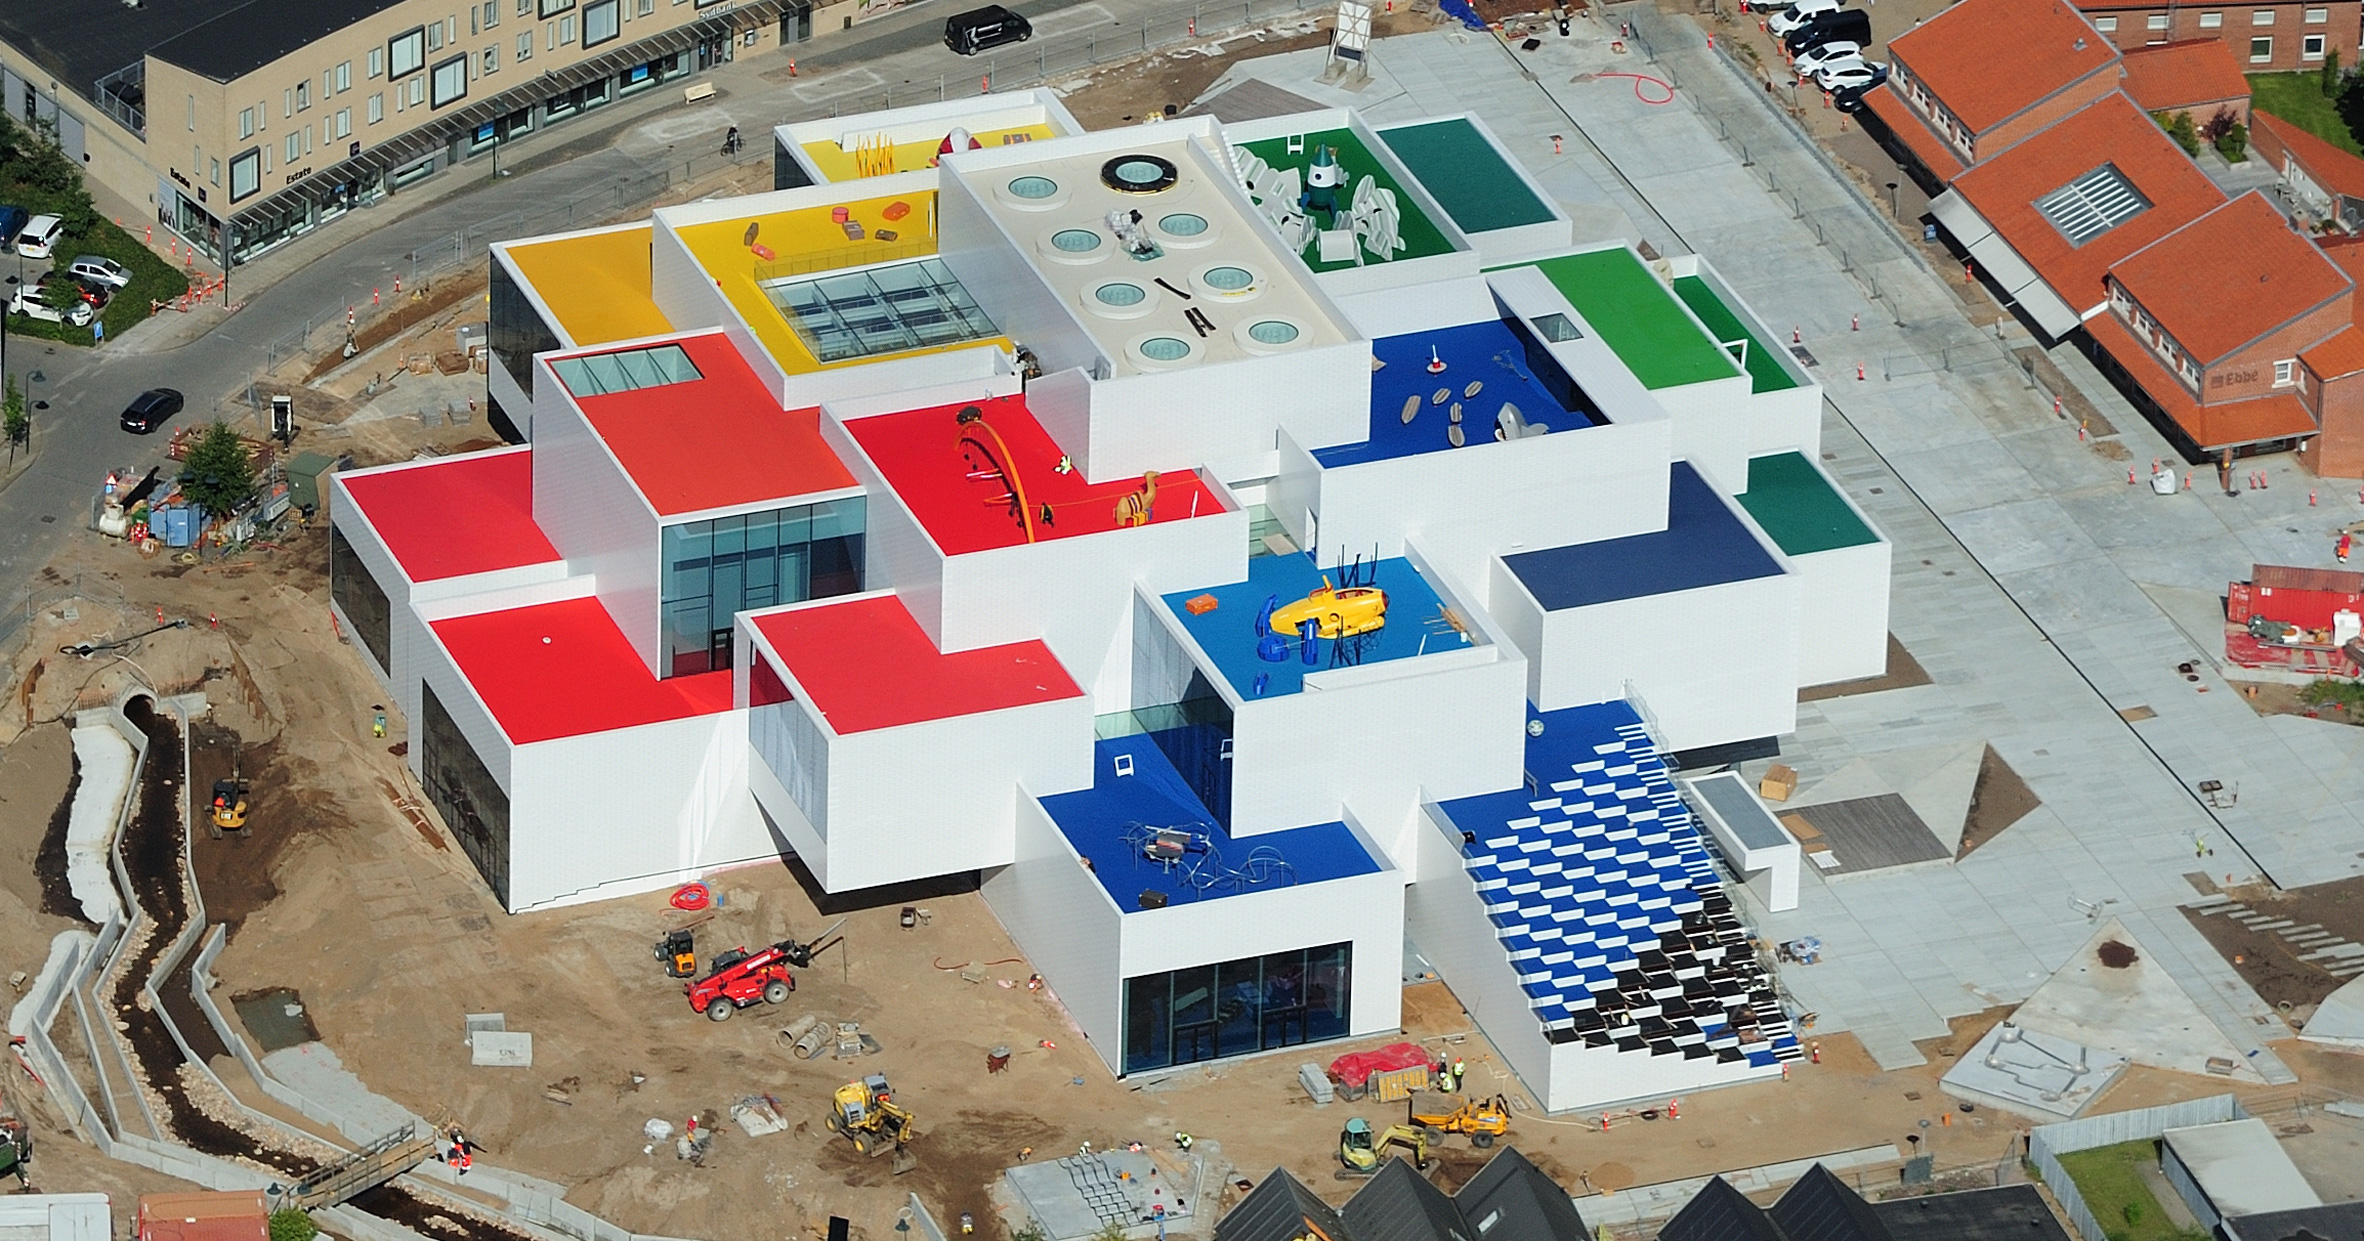 This week, Lego's BIG-designed visitor centre was captured by drone and released as a model kit